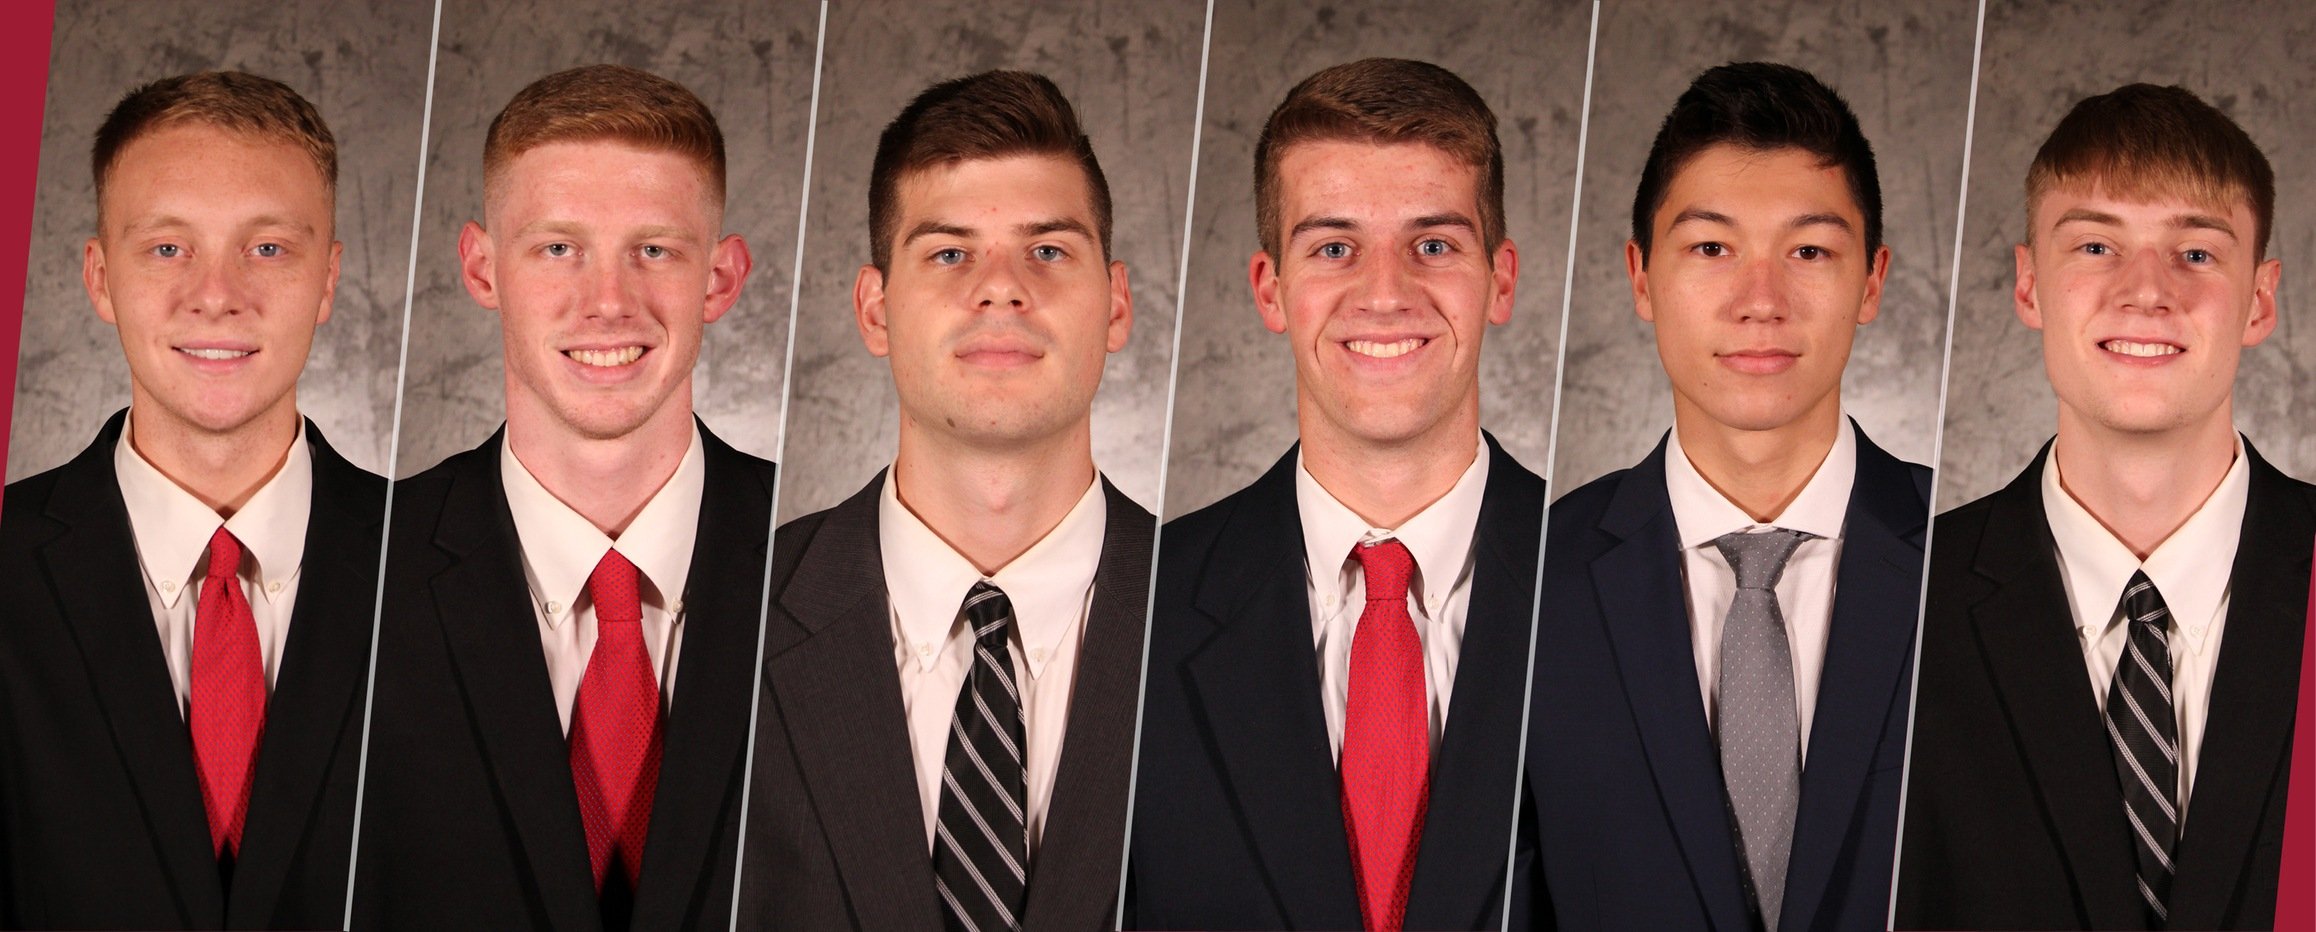 From left: Sam Amsbaugh, Taylor Filbert, Cayce Good, Kam Hartung, Ben Rajewski and Tyler Stumbo